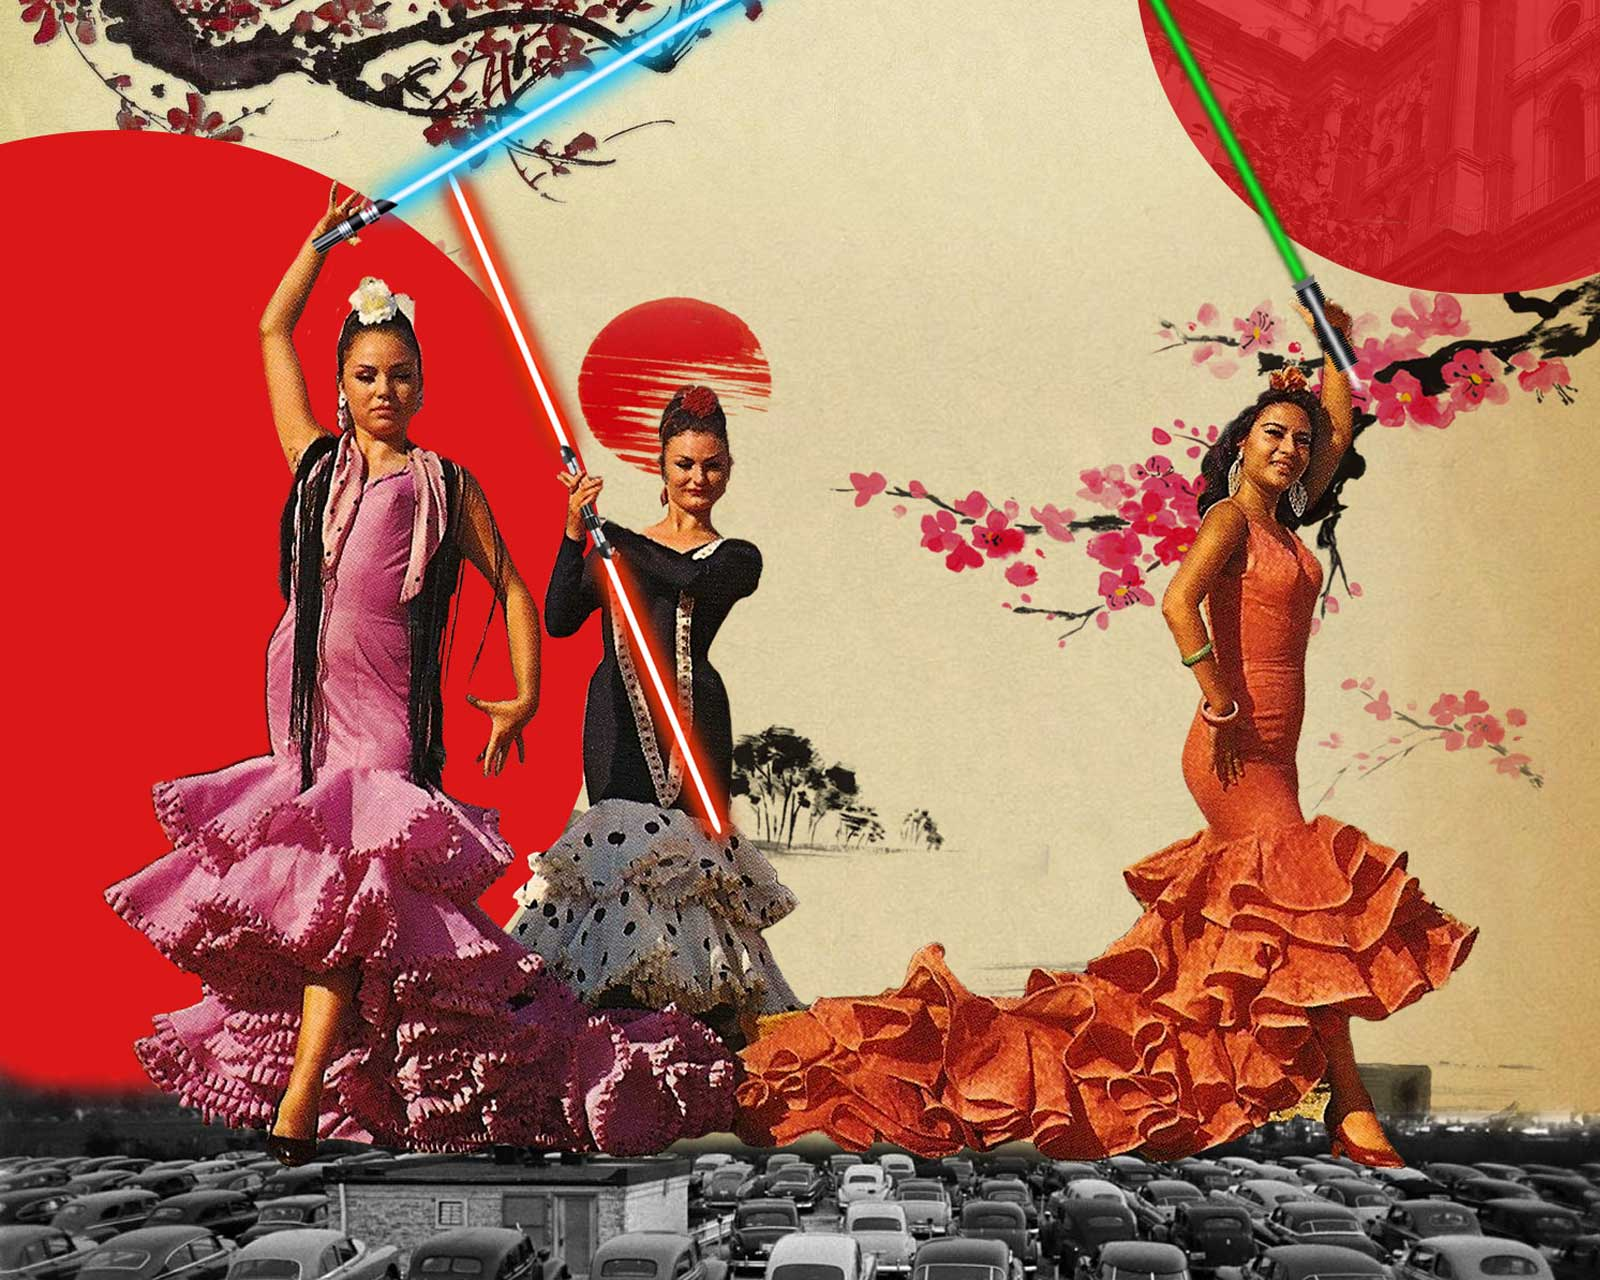 retro collage arte, collage art designs pop art style flamenco pop art girls